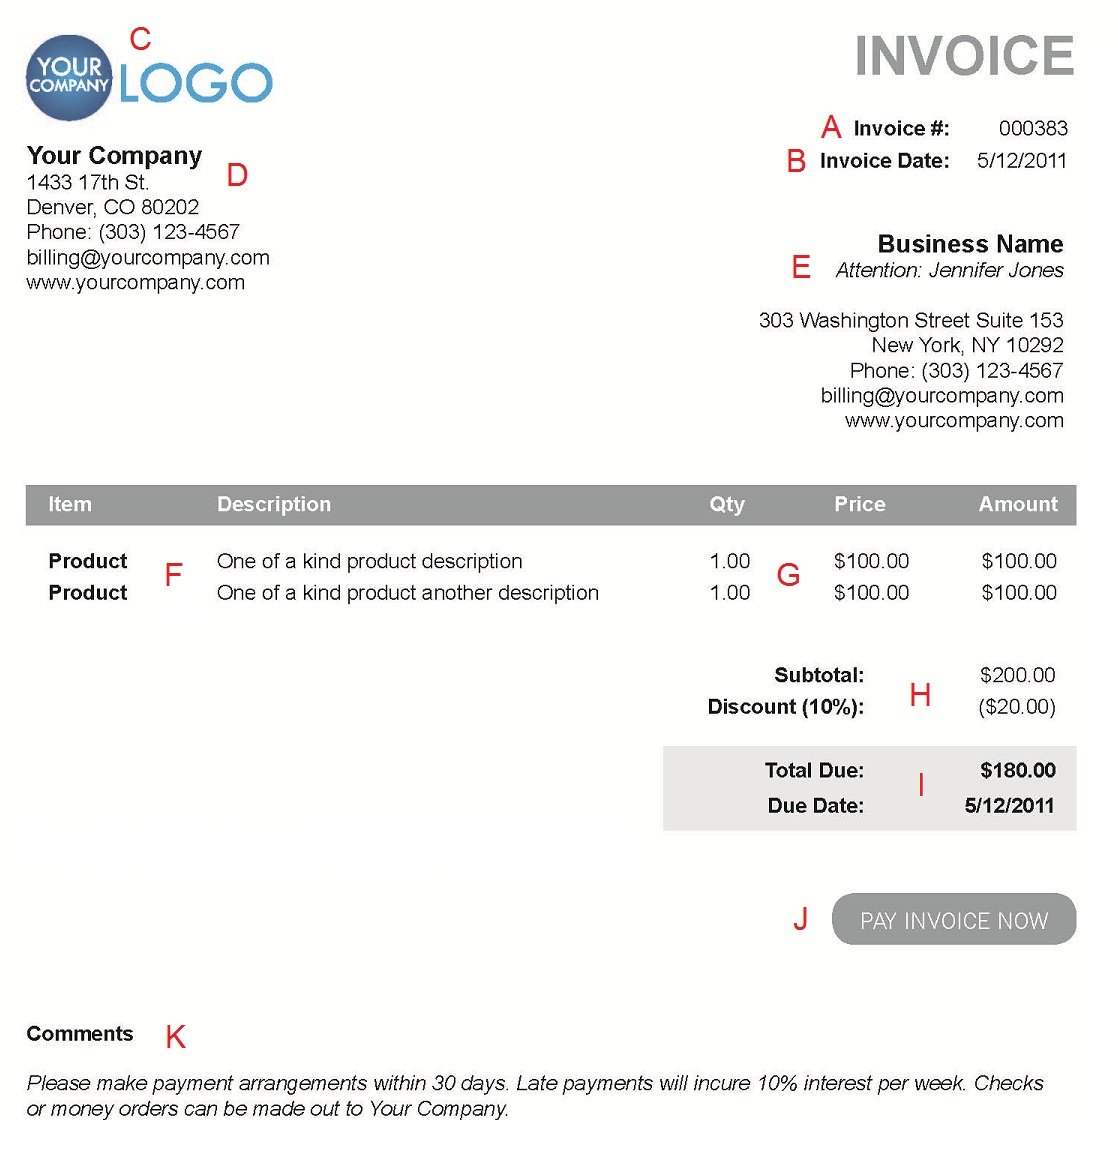 Amatospizzaus  Outstanding The  Different Sections Of An Electronic Payment Invoice With Likable A  With Nice Woo Commerce Invoice Also Invoice Sheets In Addition Custom Invoice Forms And Reminder Letter For Outstanding Payment Invoice As Well As Proforma Invoice Meaning In Tamil Additionally What Is A Proforma Invoice In The Uk From Paysimplecom With Amatospizzaus  Likable The  Different Sections Of An Electronic Payment Invoice With Nice A  And Outstanding Woo Commerce Invoice Also Invoice Sheets In Addition Custom Invoice Forms From Paysimplecom